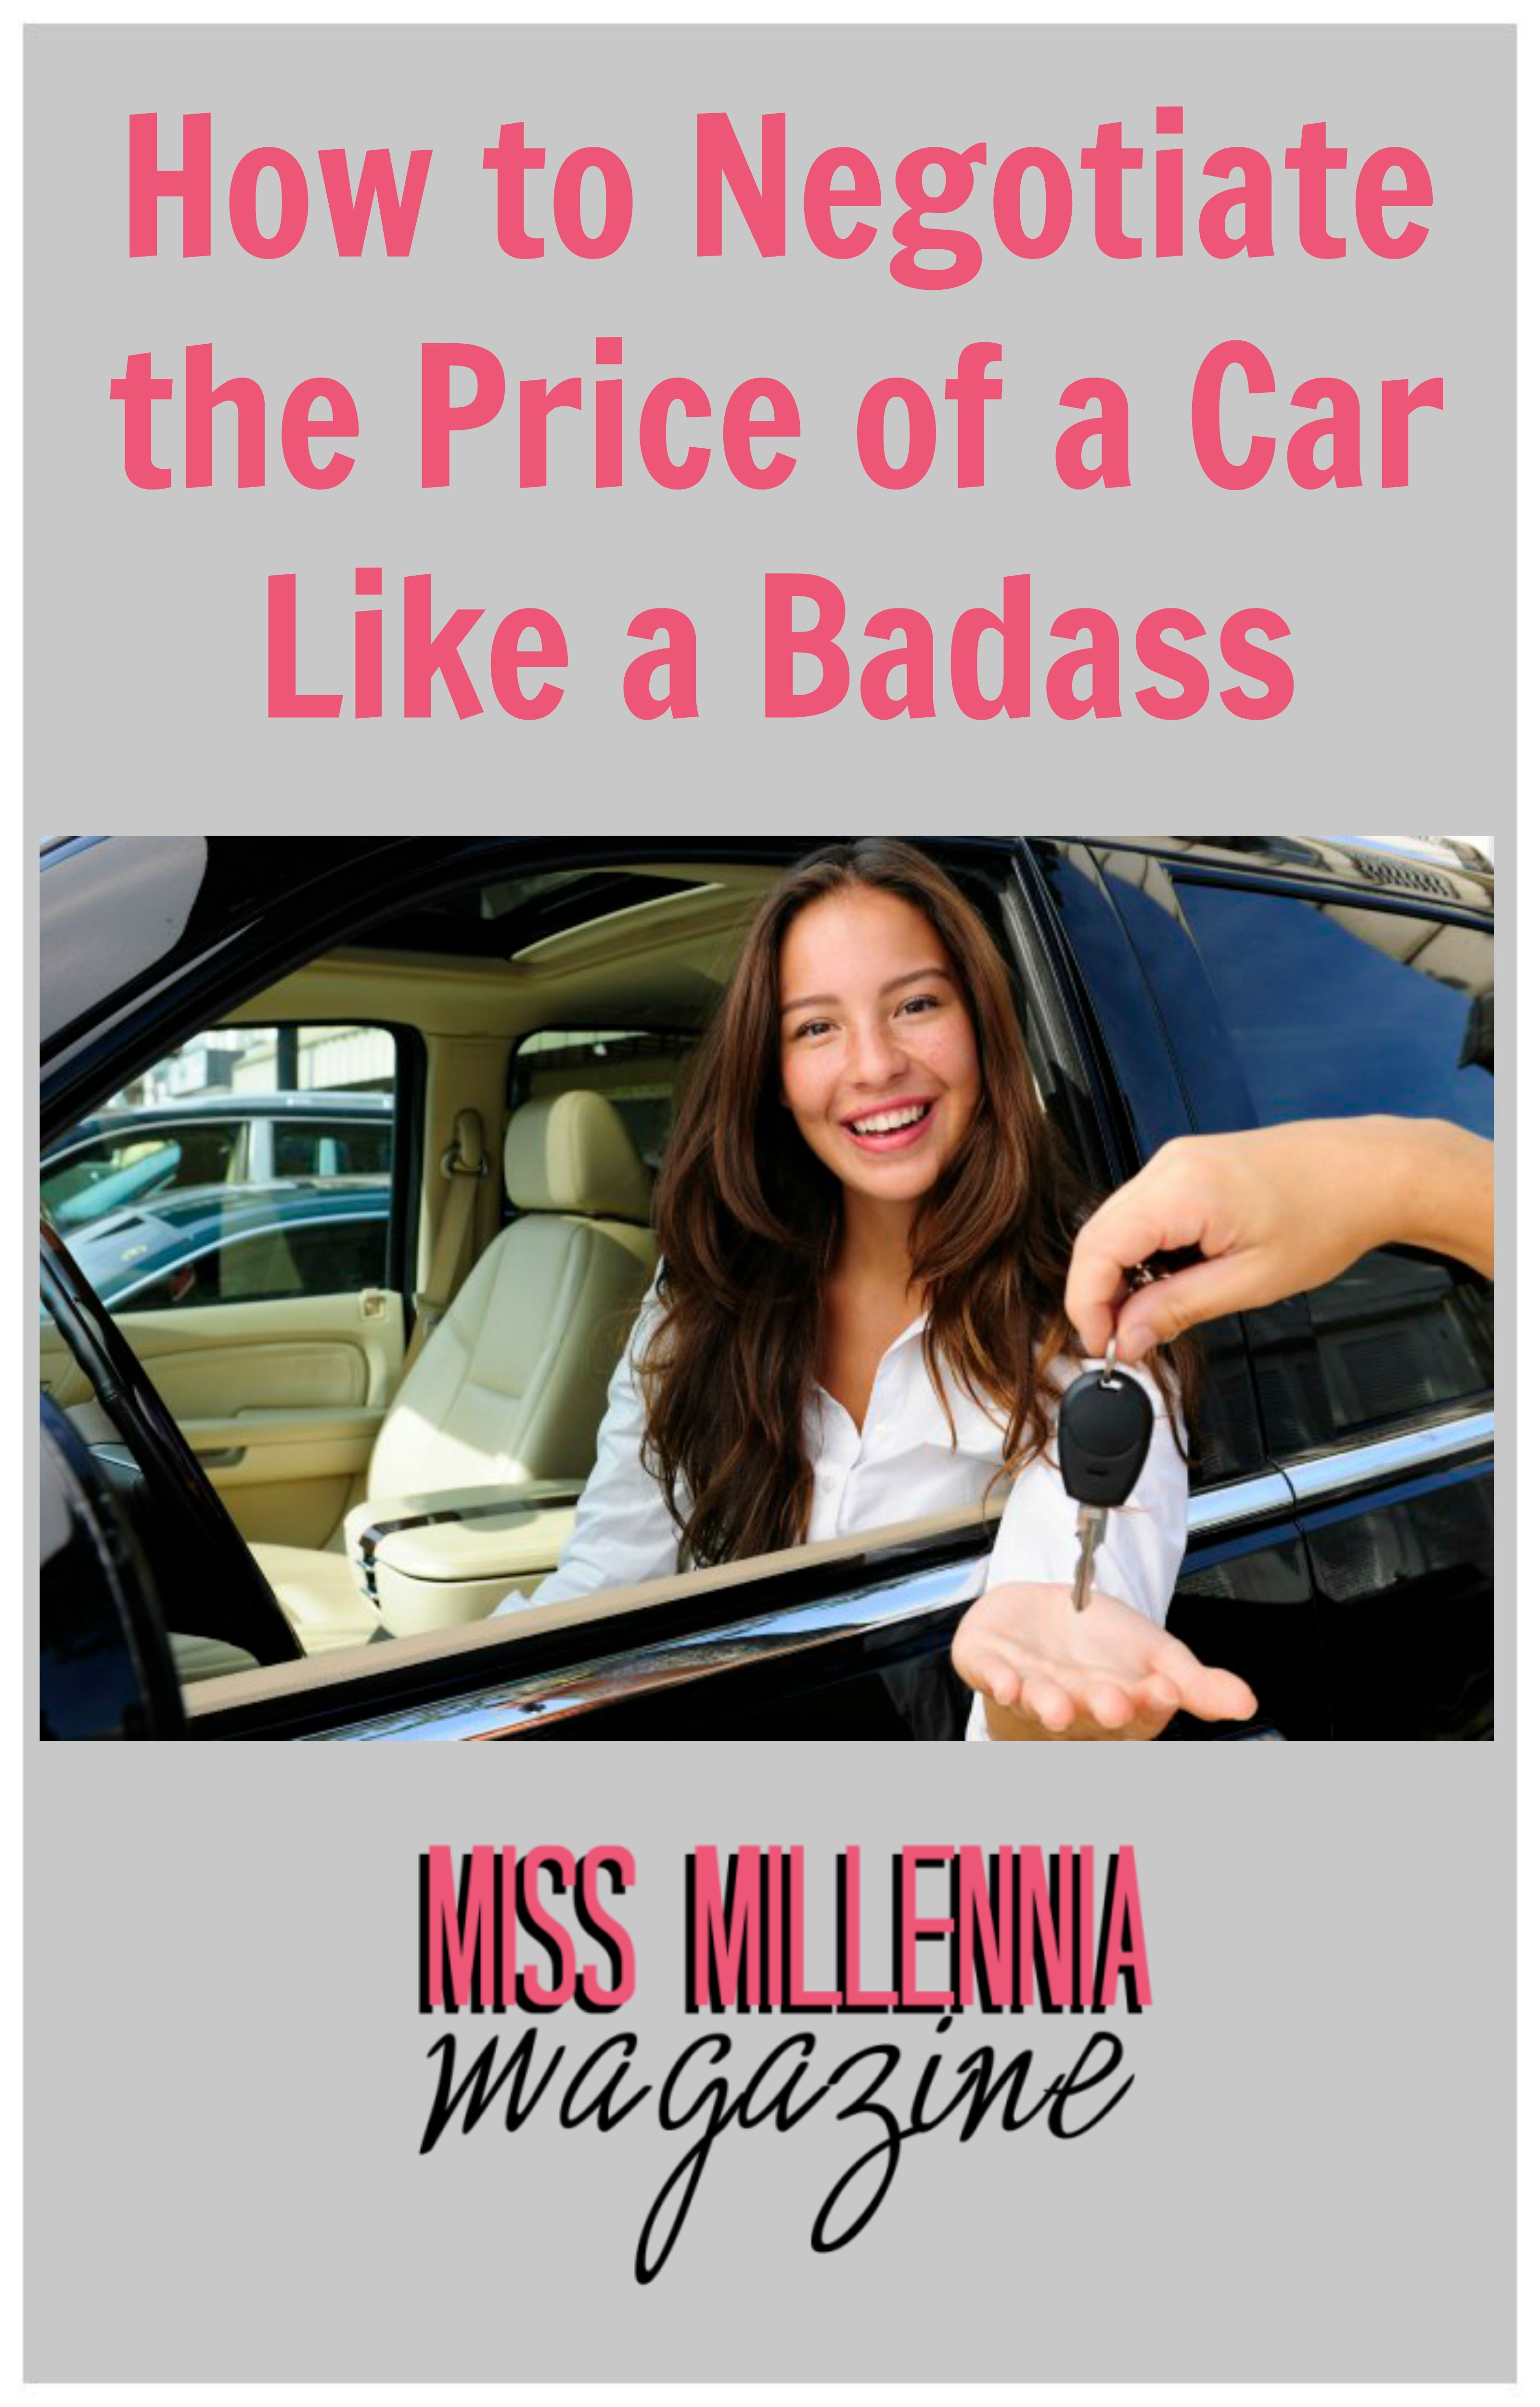 How To Negotiate The Price Of A Car Like A Badass Lifeguide